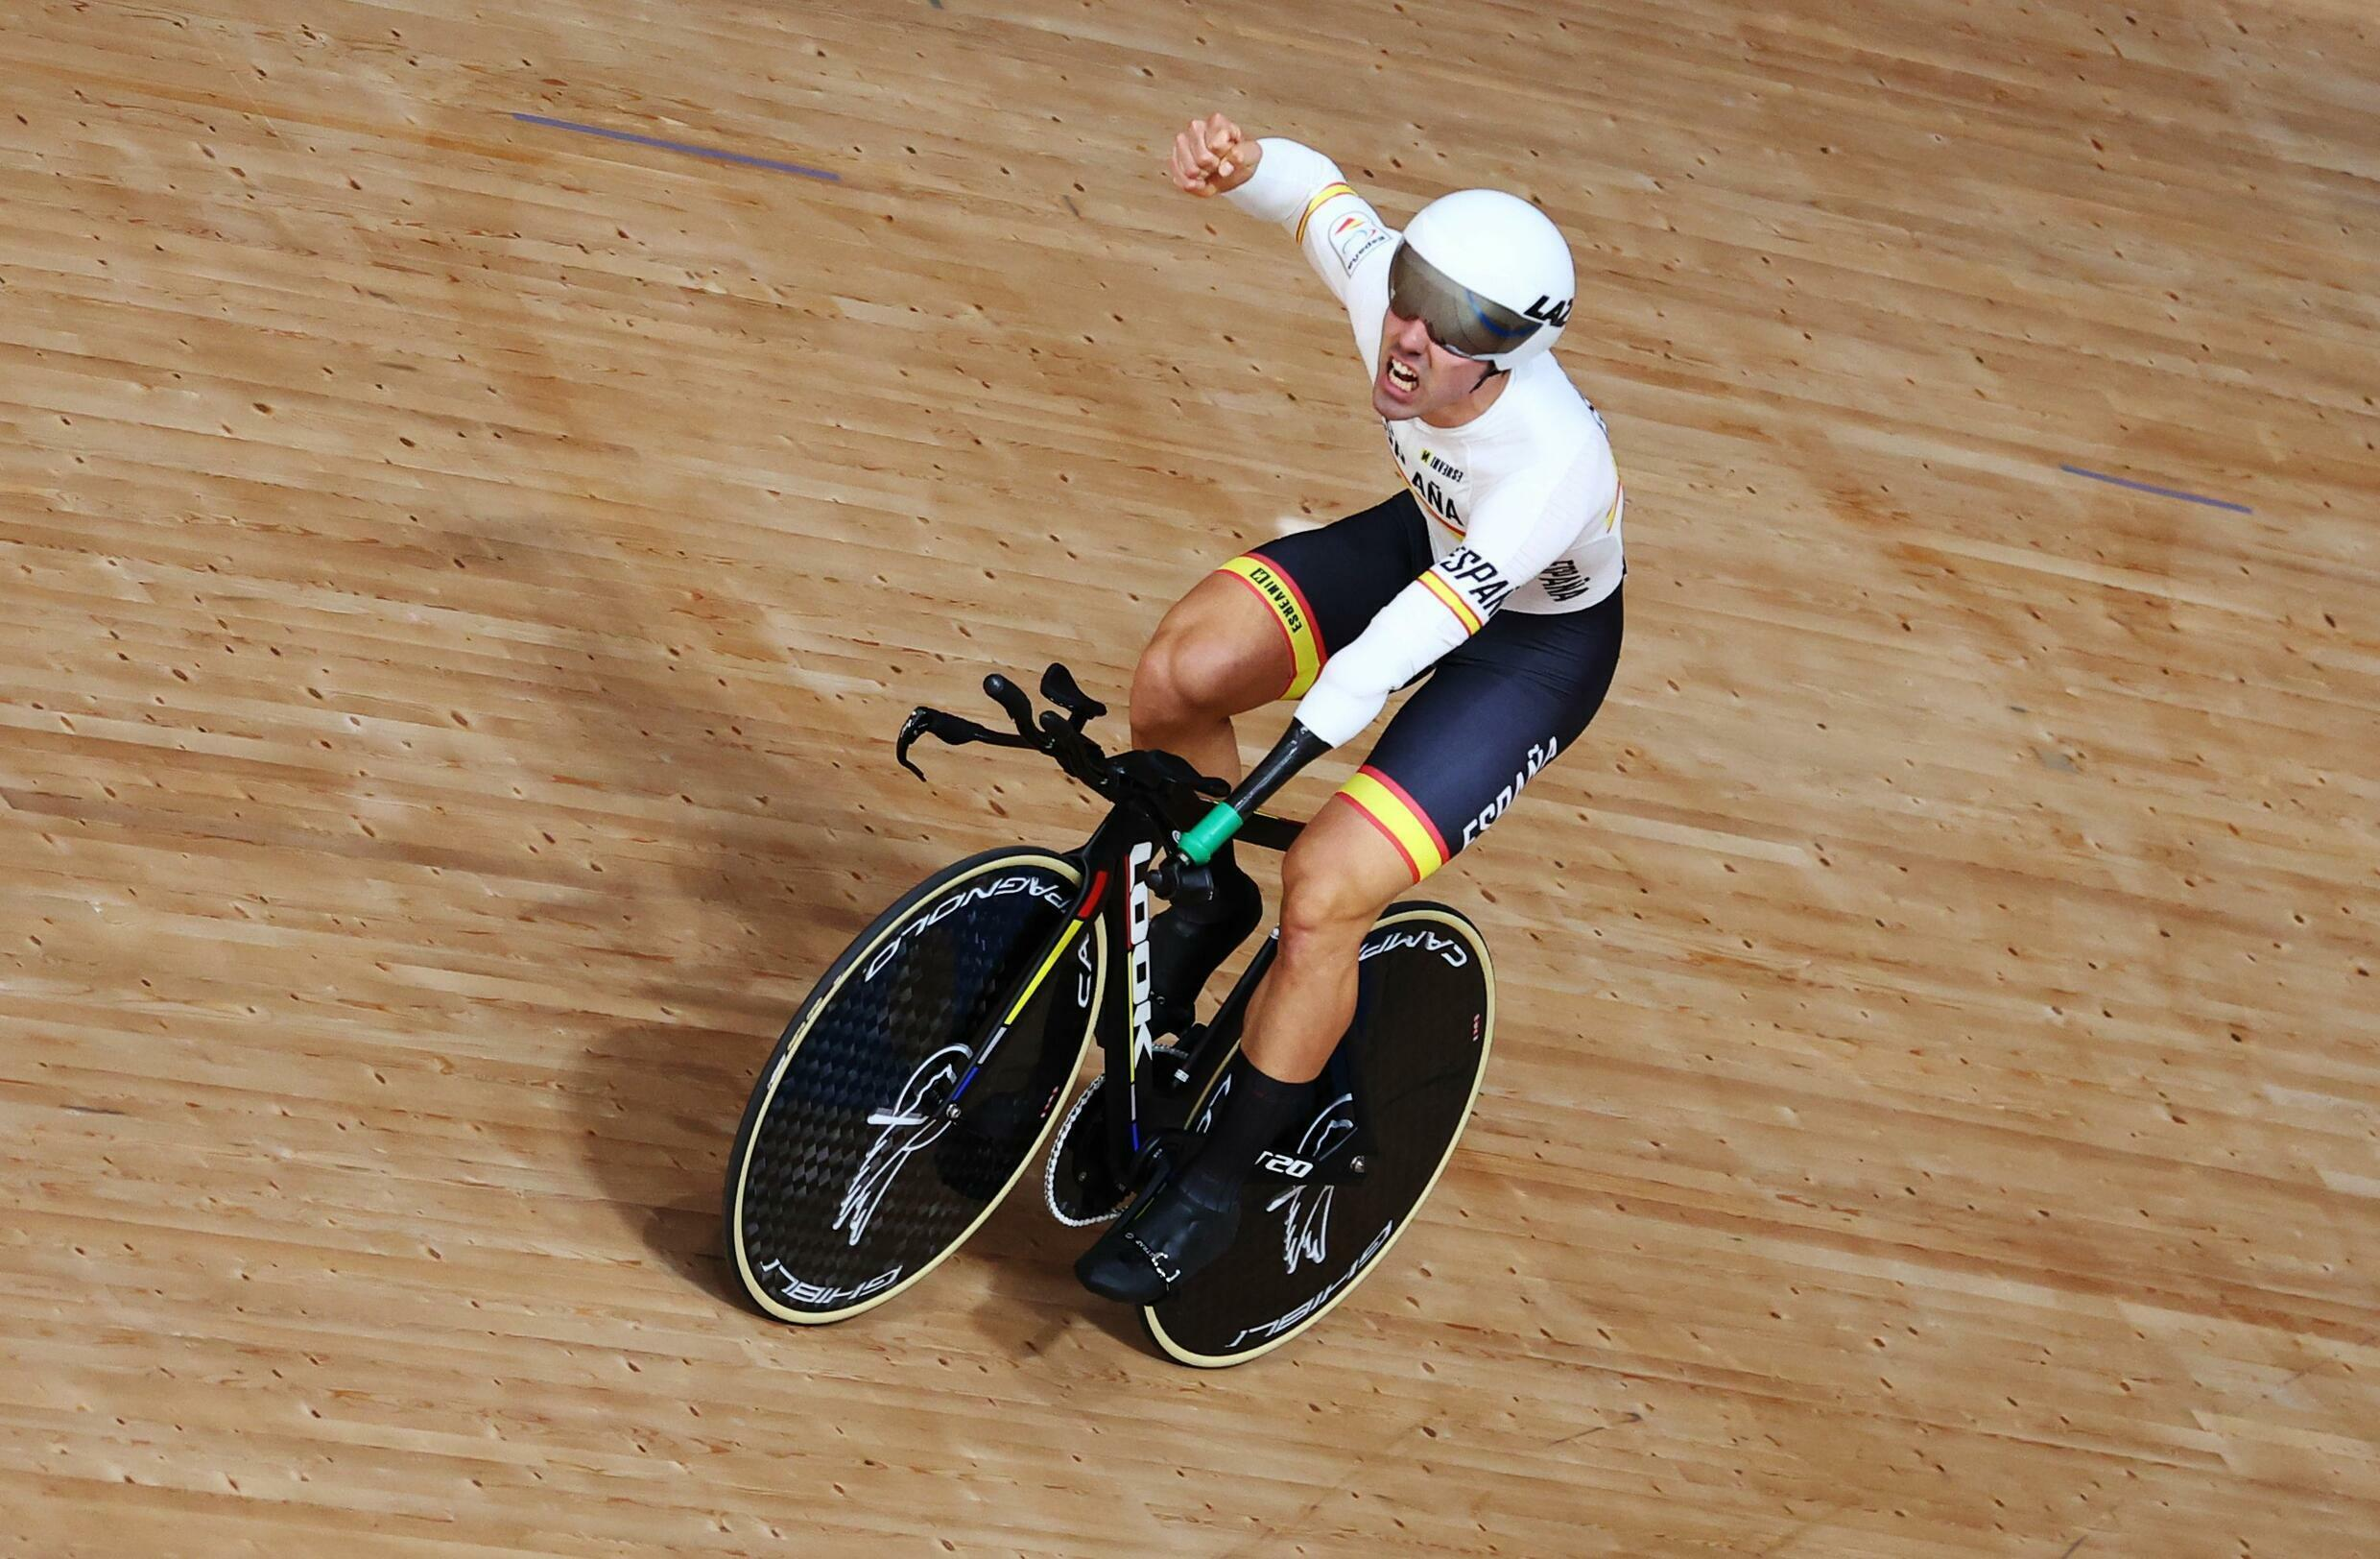 2021-08-26T081759Z_1349243229_SP1EH8Q0N1WAD_RTRMADP_3_PARALYMPICS-2020-CYCLING-TRACK